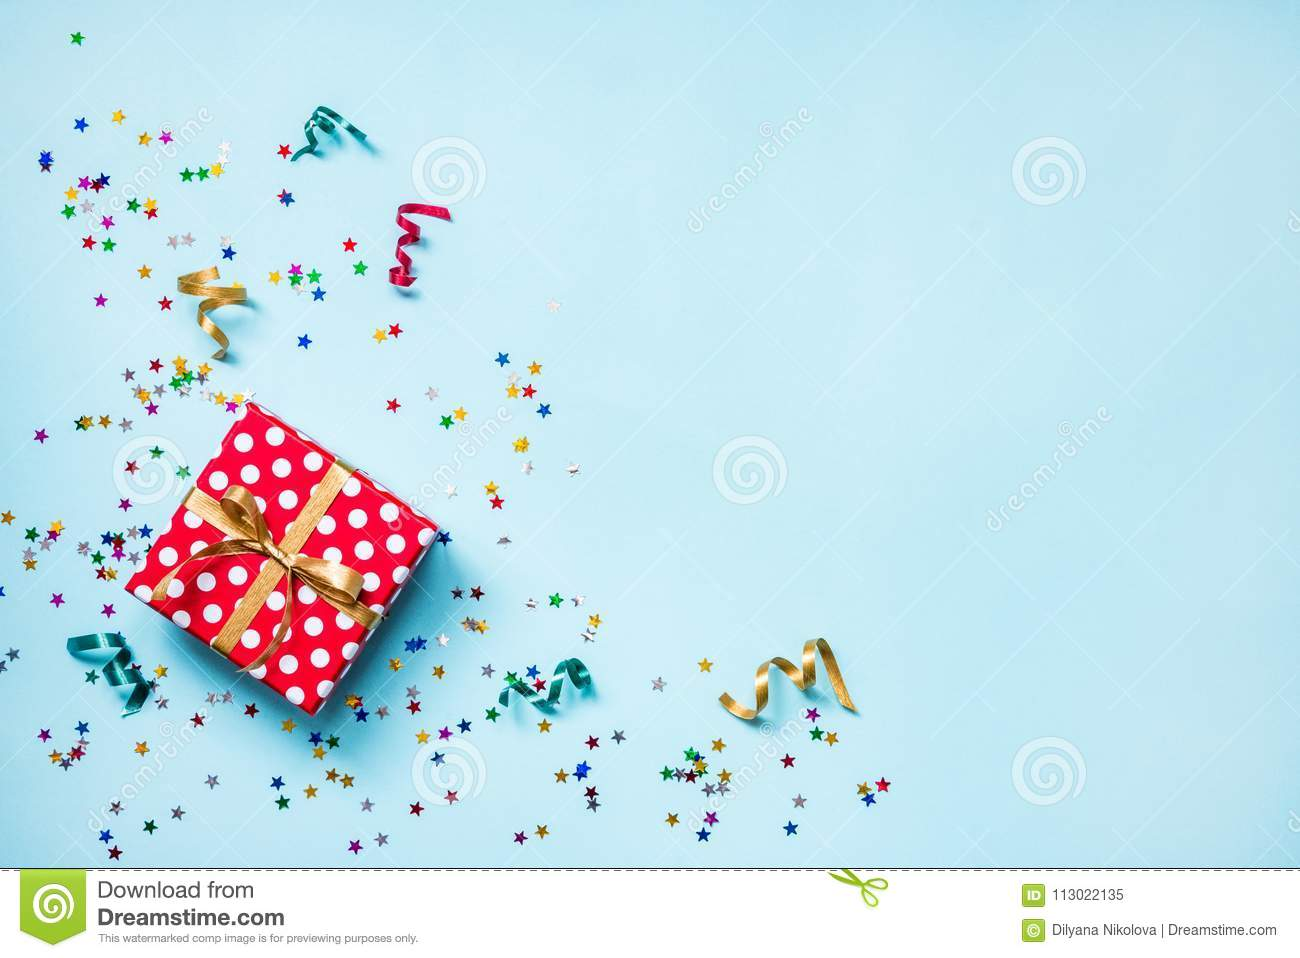 Top view of a red dotted gift box, scattered glittering star shaped confetti and colorful ribbons over blue background. Celebratio